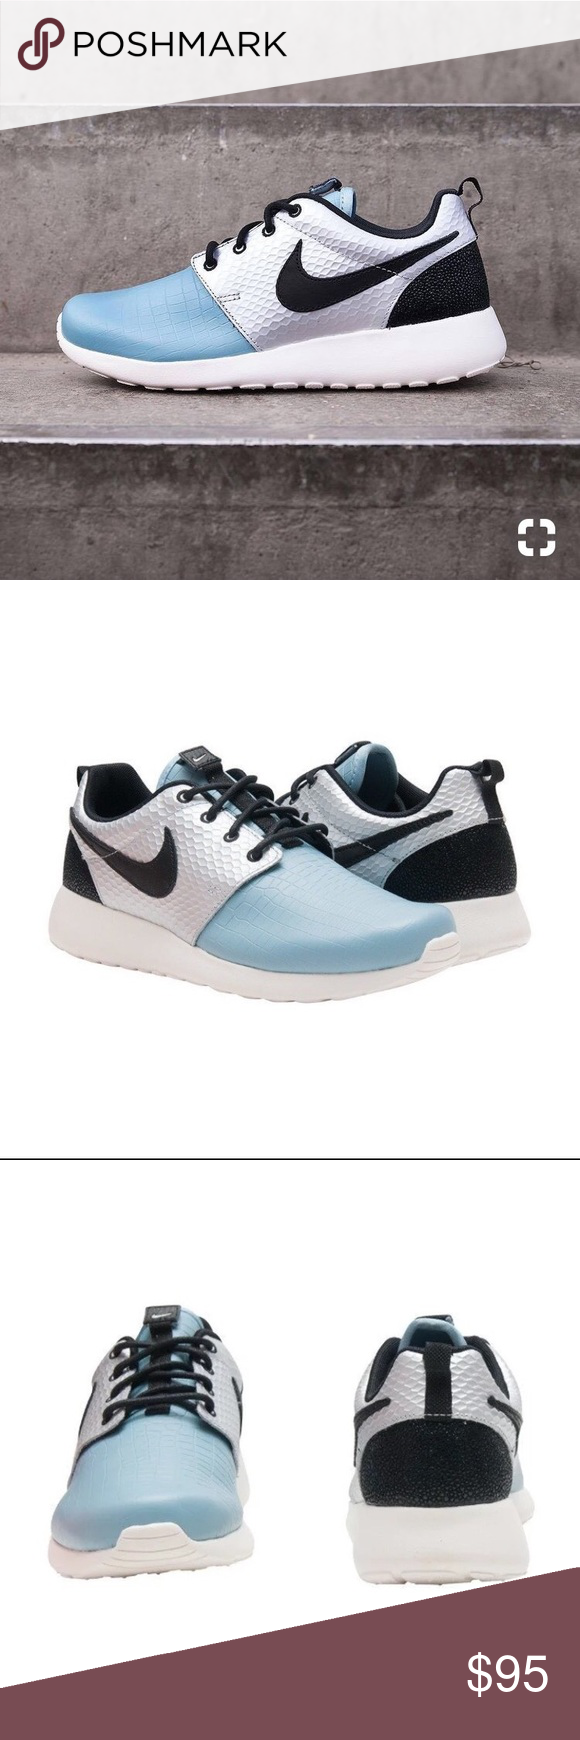 lowest price 44530 4f176 NWT Nike Roshe One LX New in box Nike Roshe One Lx Brand new, Never worn  Size  Women s 7 (24 cm) Color  Light blue  metallic silver  black Nike Shoes  ...